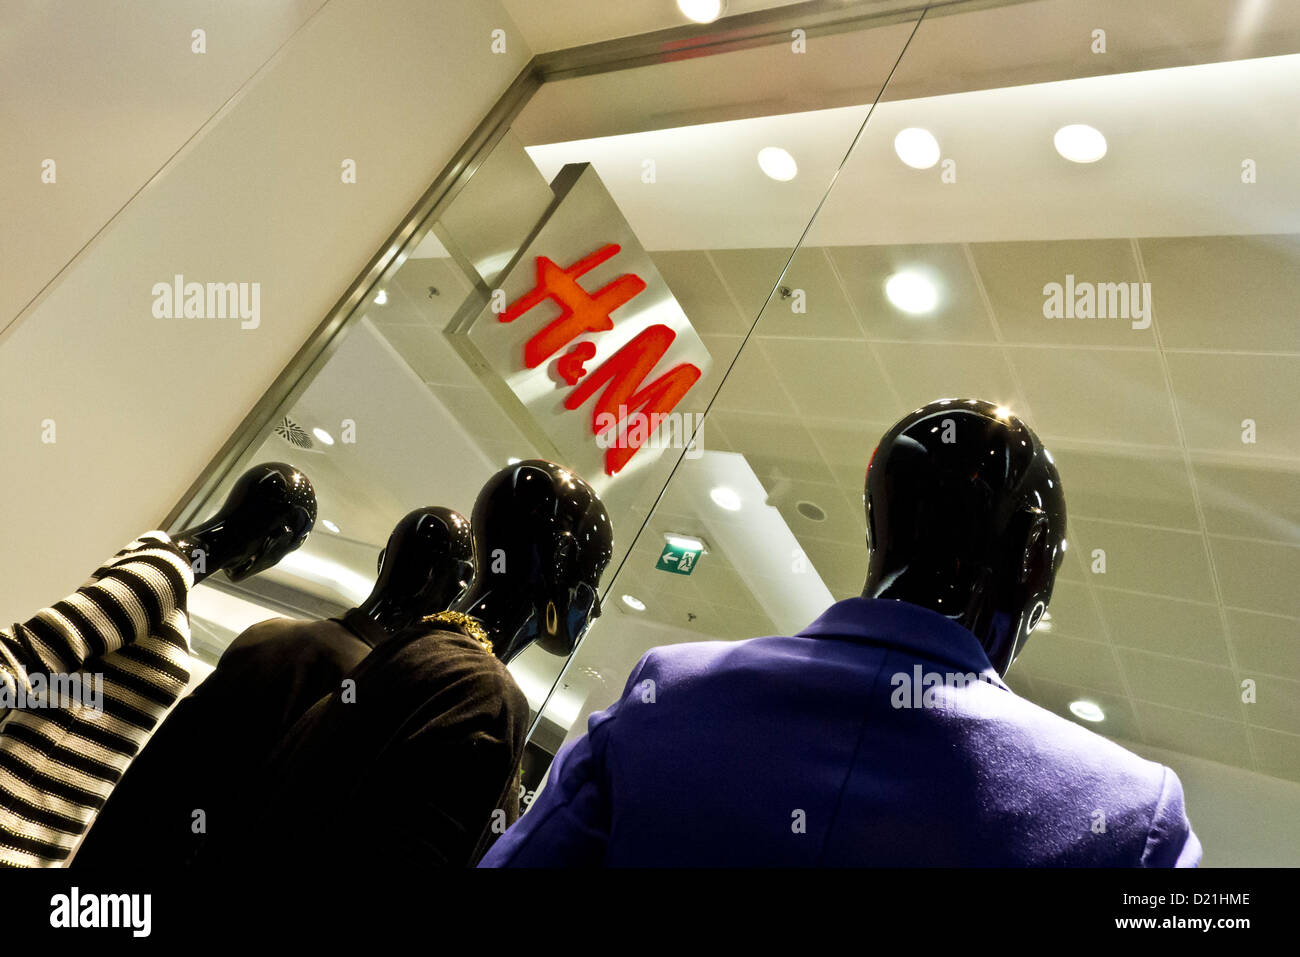 H&M store logo - Stock Image